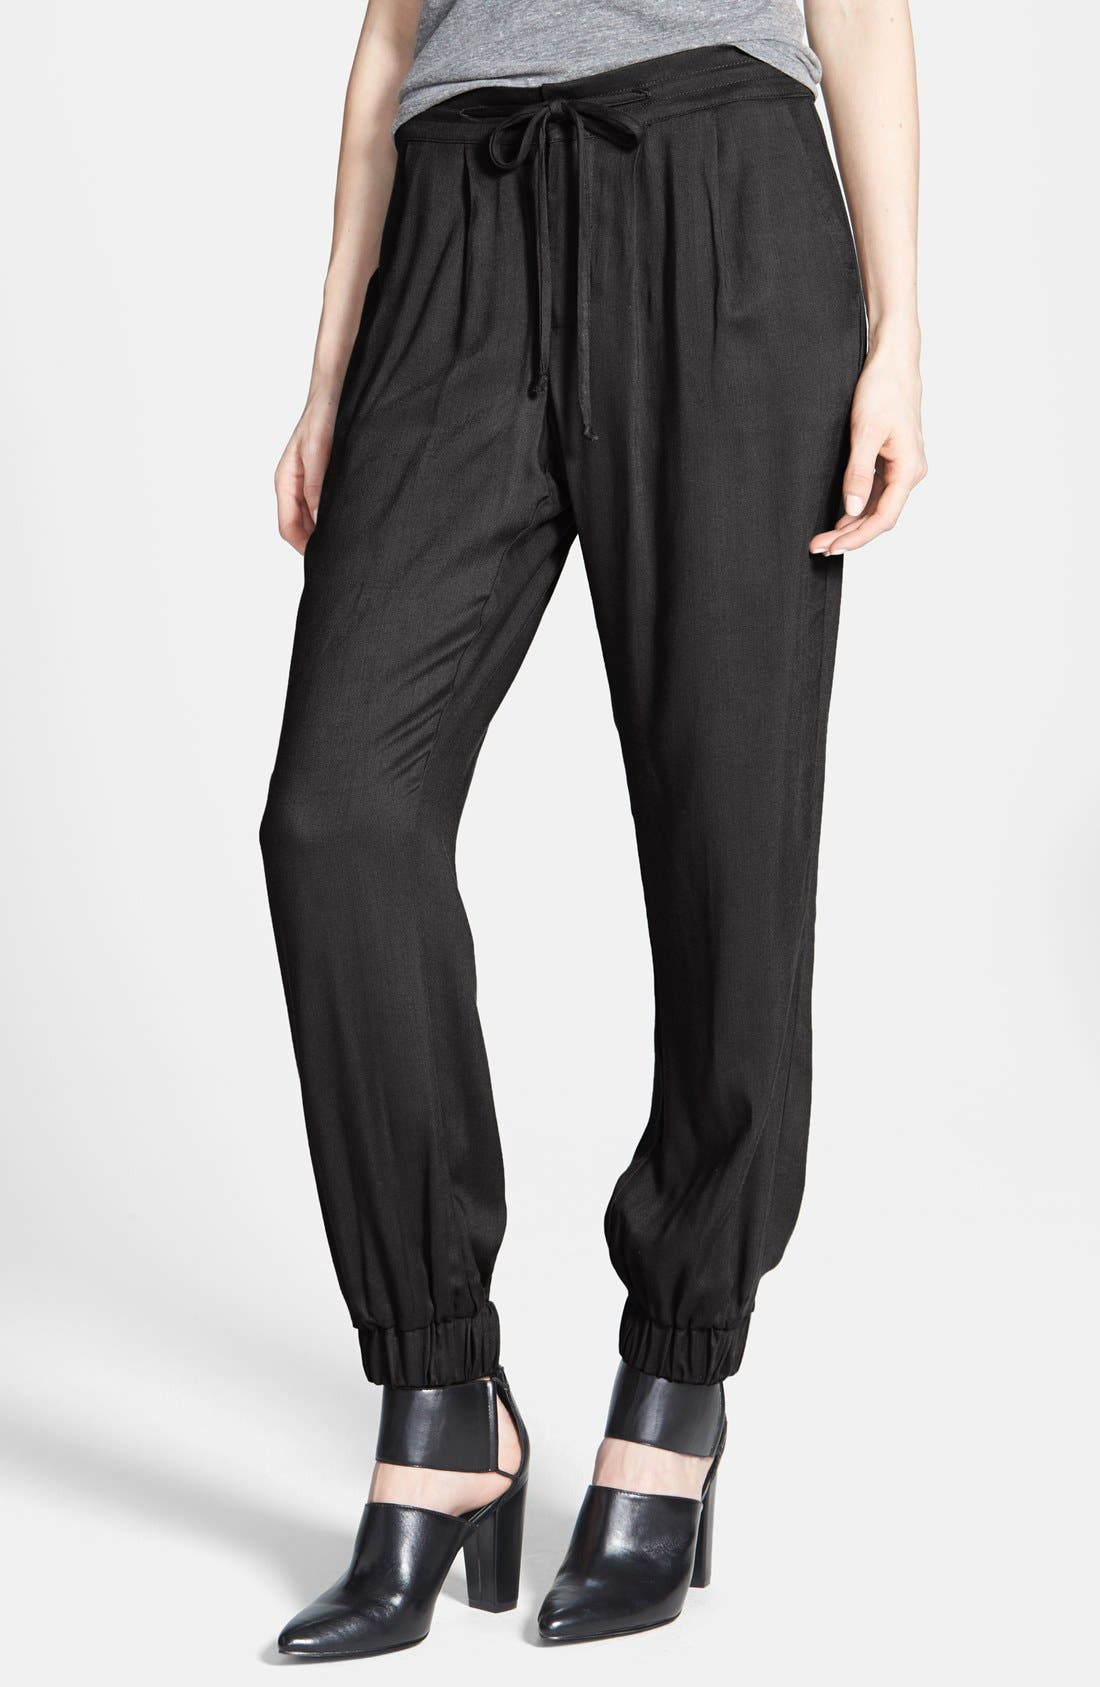 Main Image - Lily White Drawstring Soft Pants (Juniors) (Online Only)